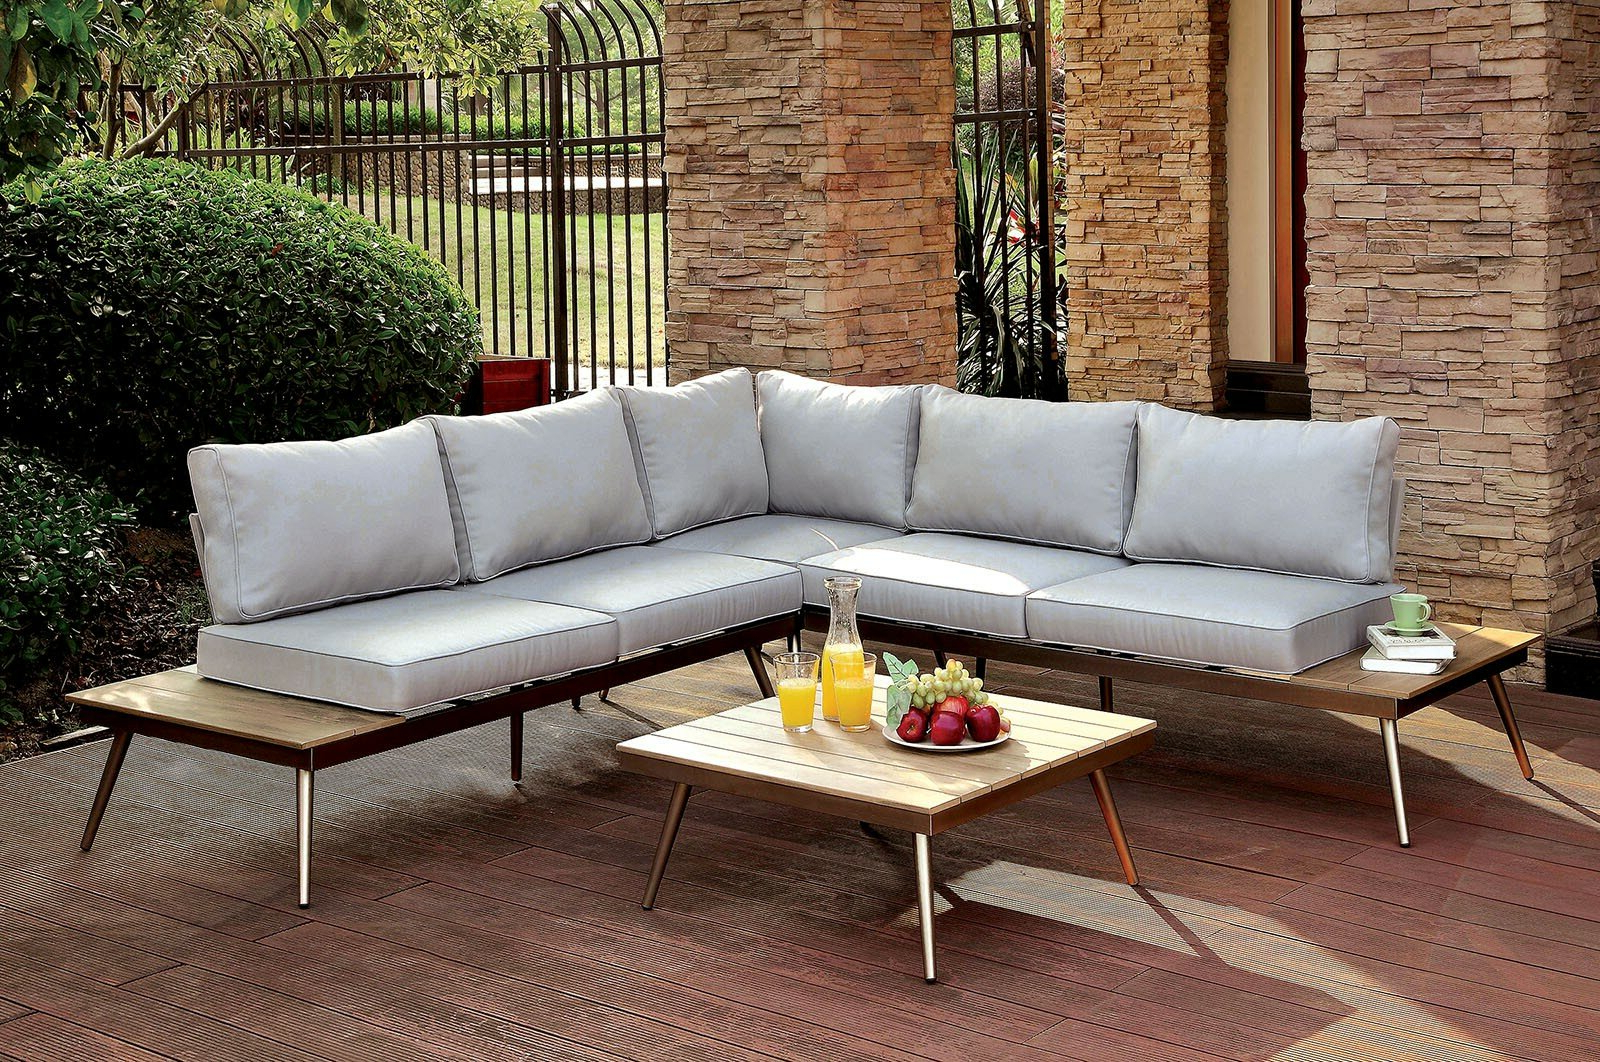 Popular Honeycutt Patio Sofas With Cushions With Regard To Brecht Patio Sectional With Cushions (Gallery 13 of 25)